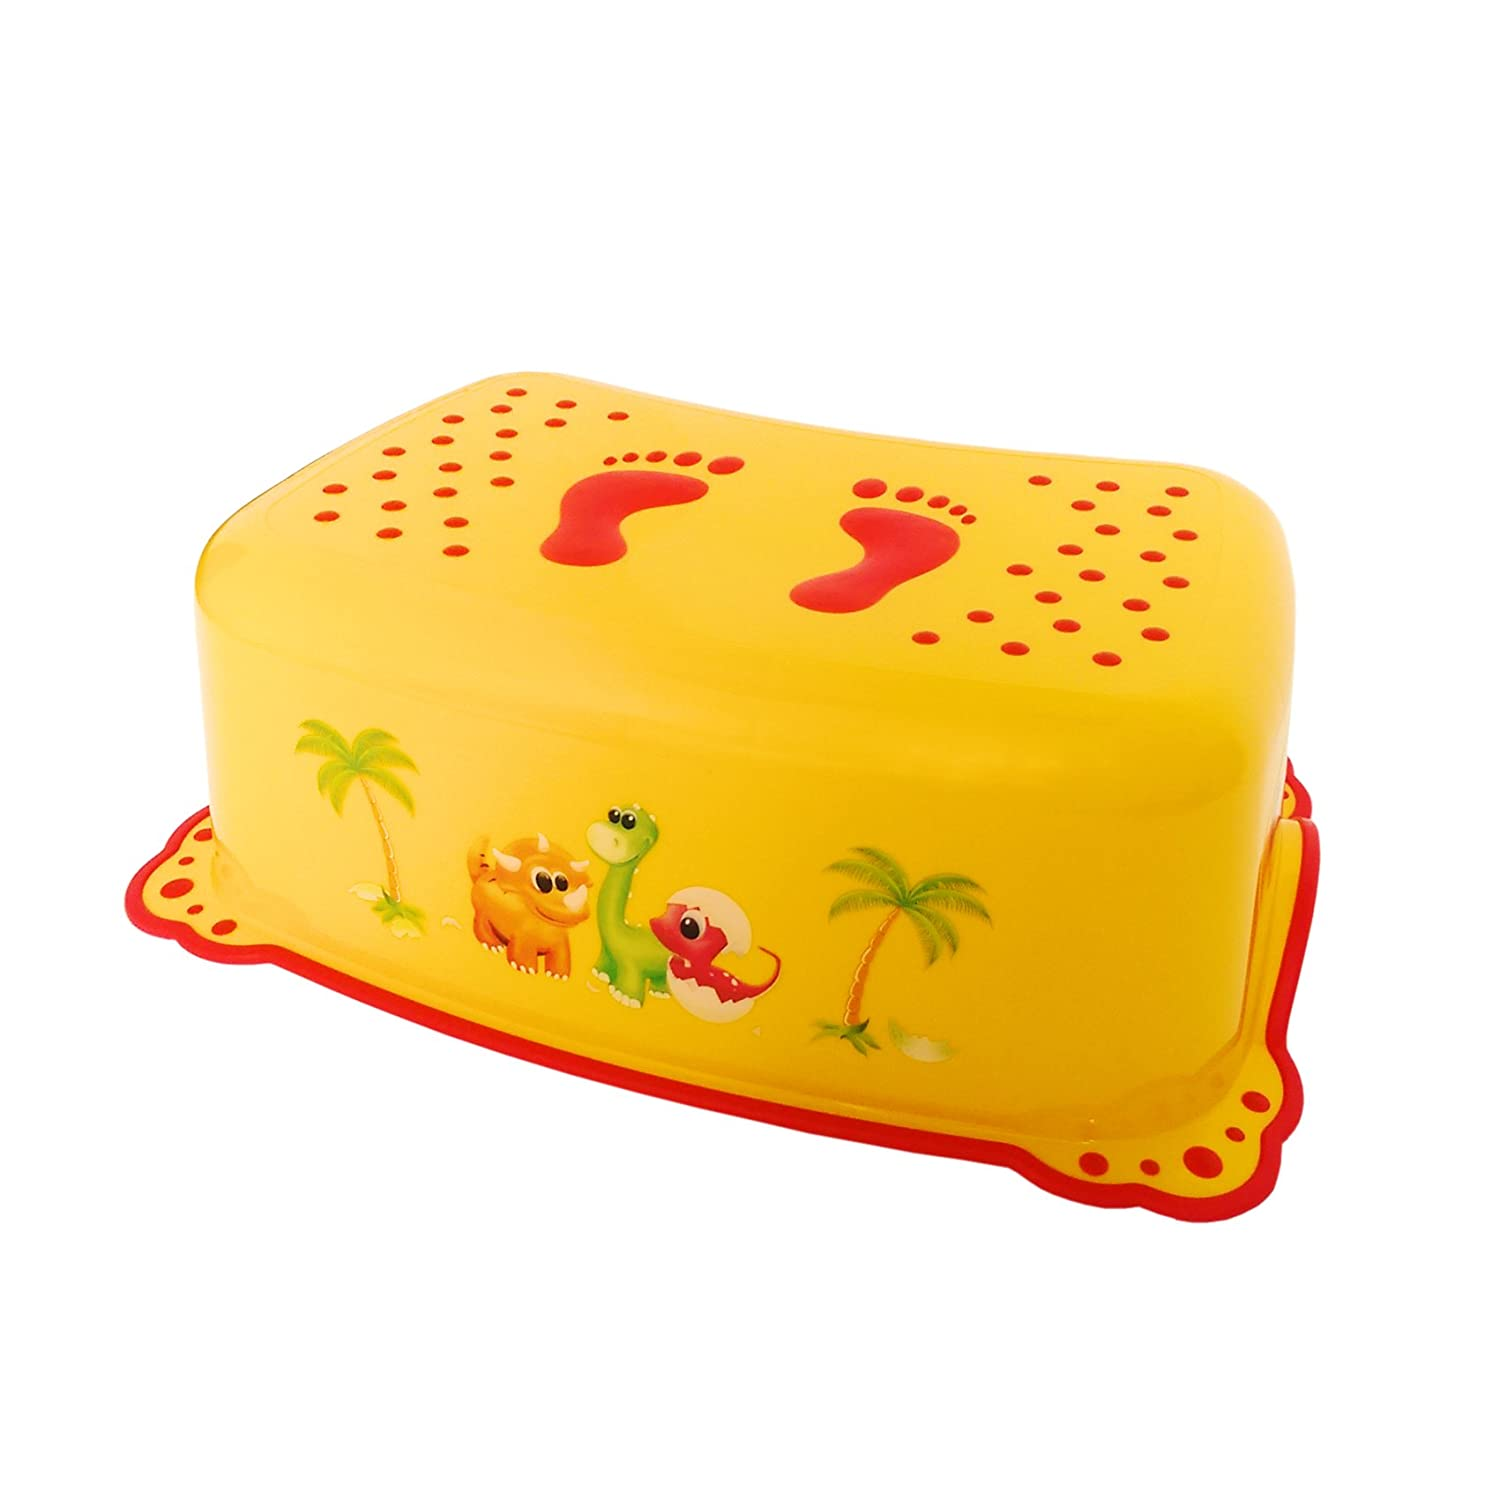 Dino Toddler Toilet Training Step Stool - Yellow UNKNOWN